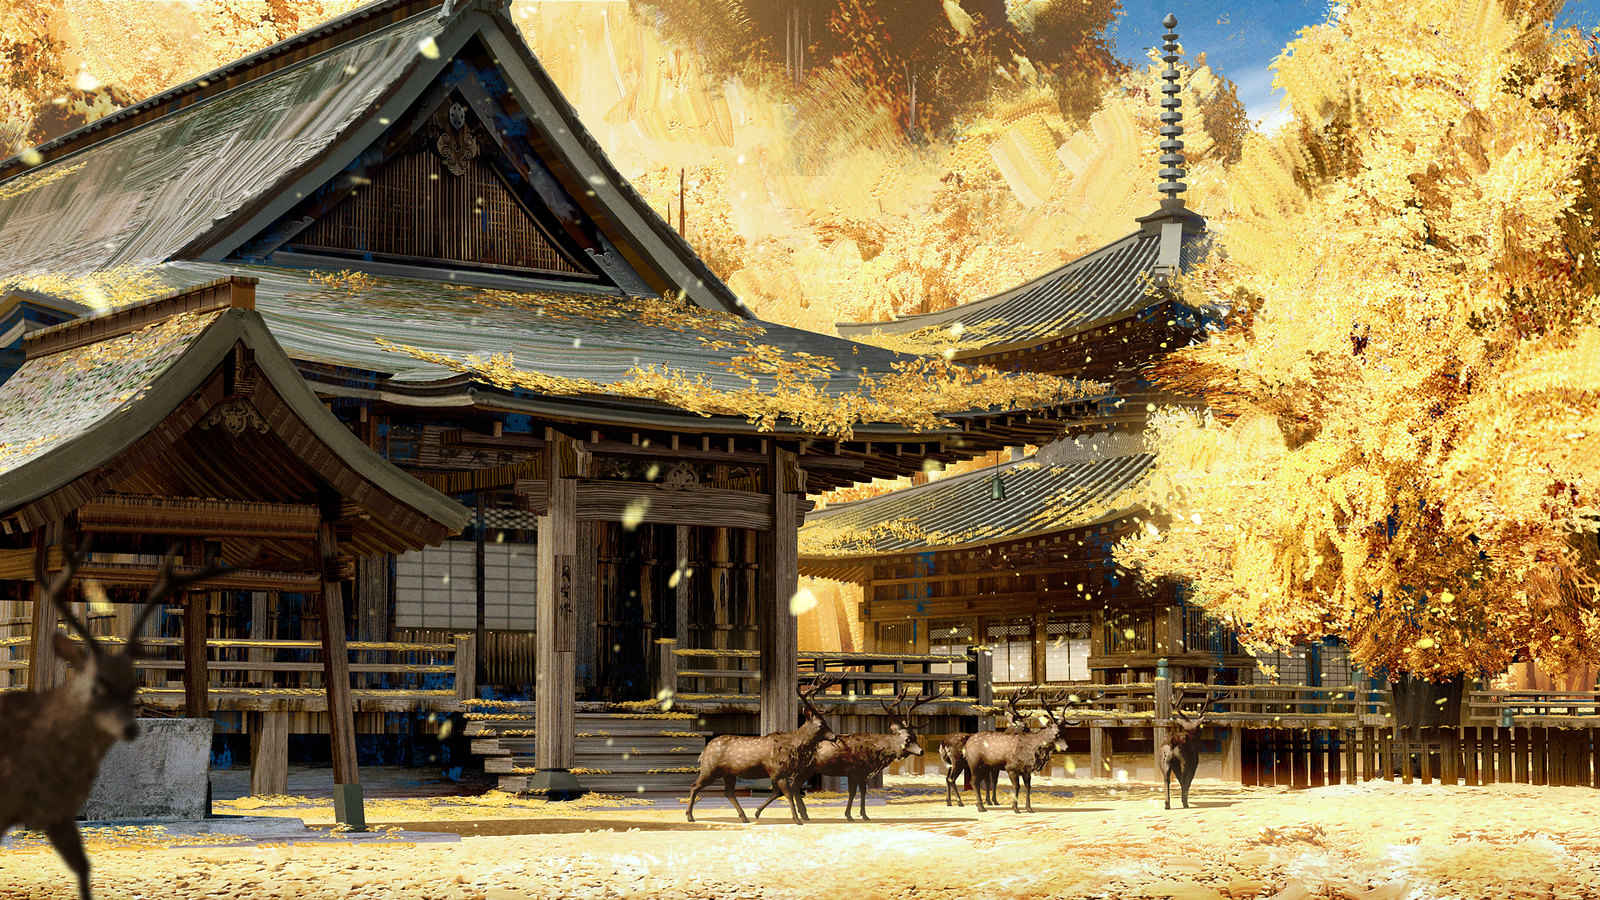 Video Conference Backgrounds - Ghost of Tsushima